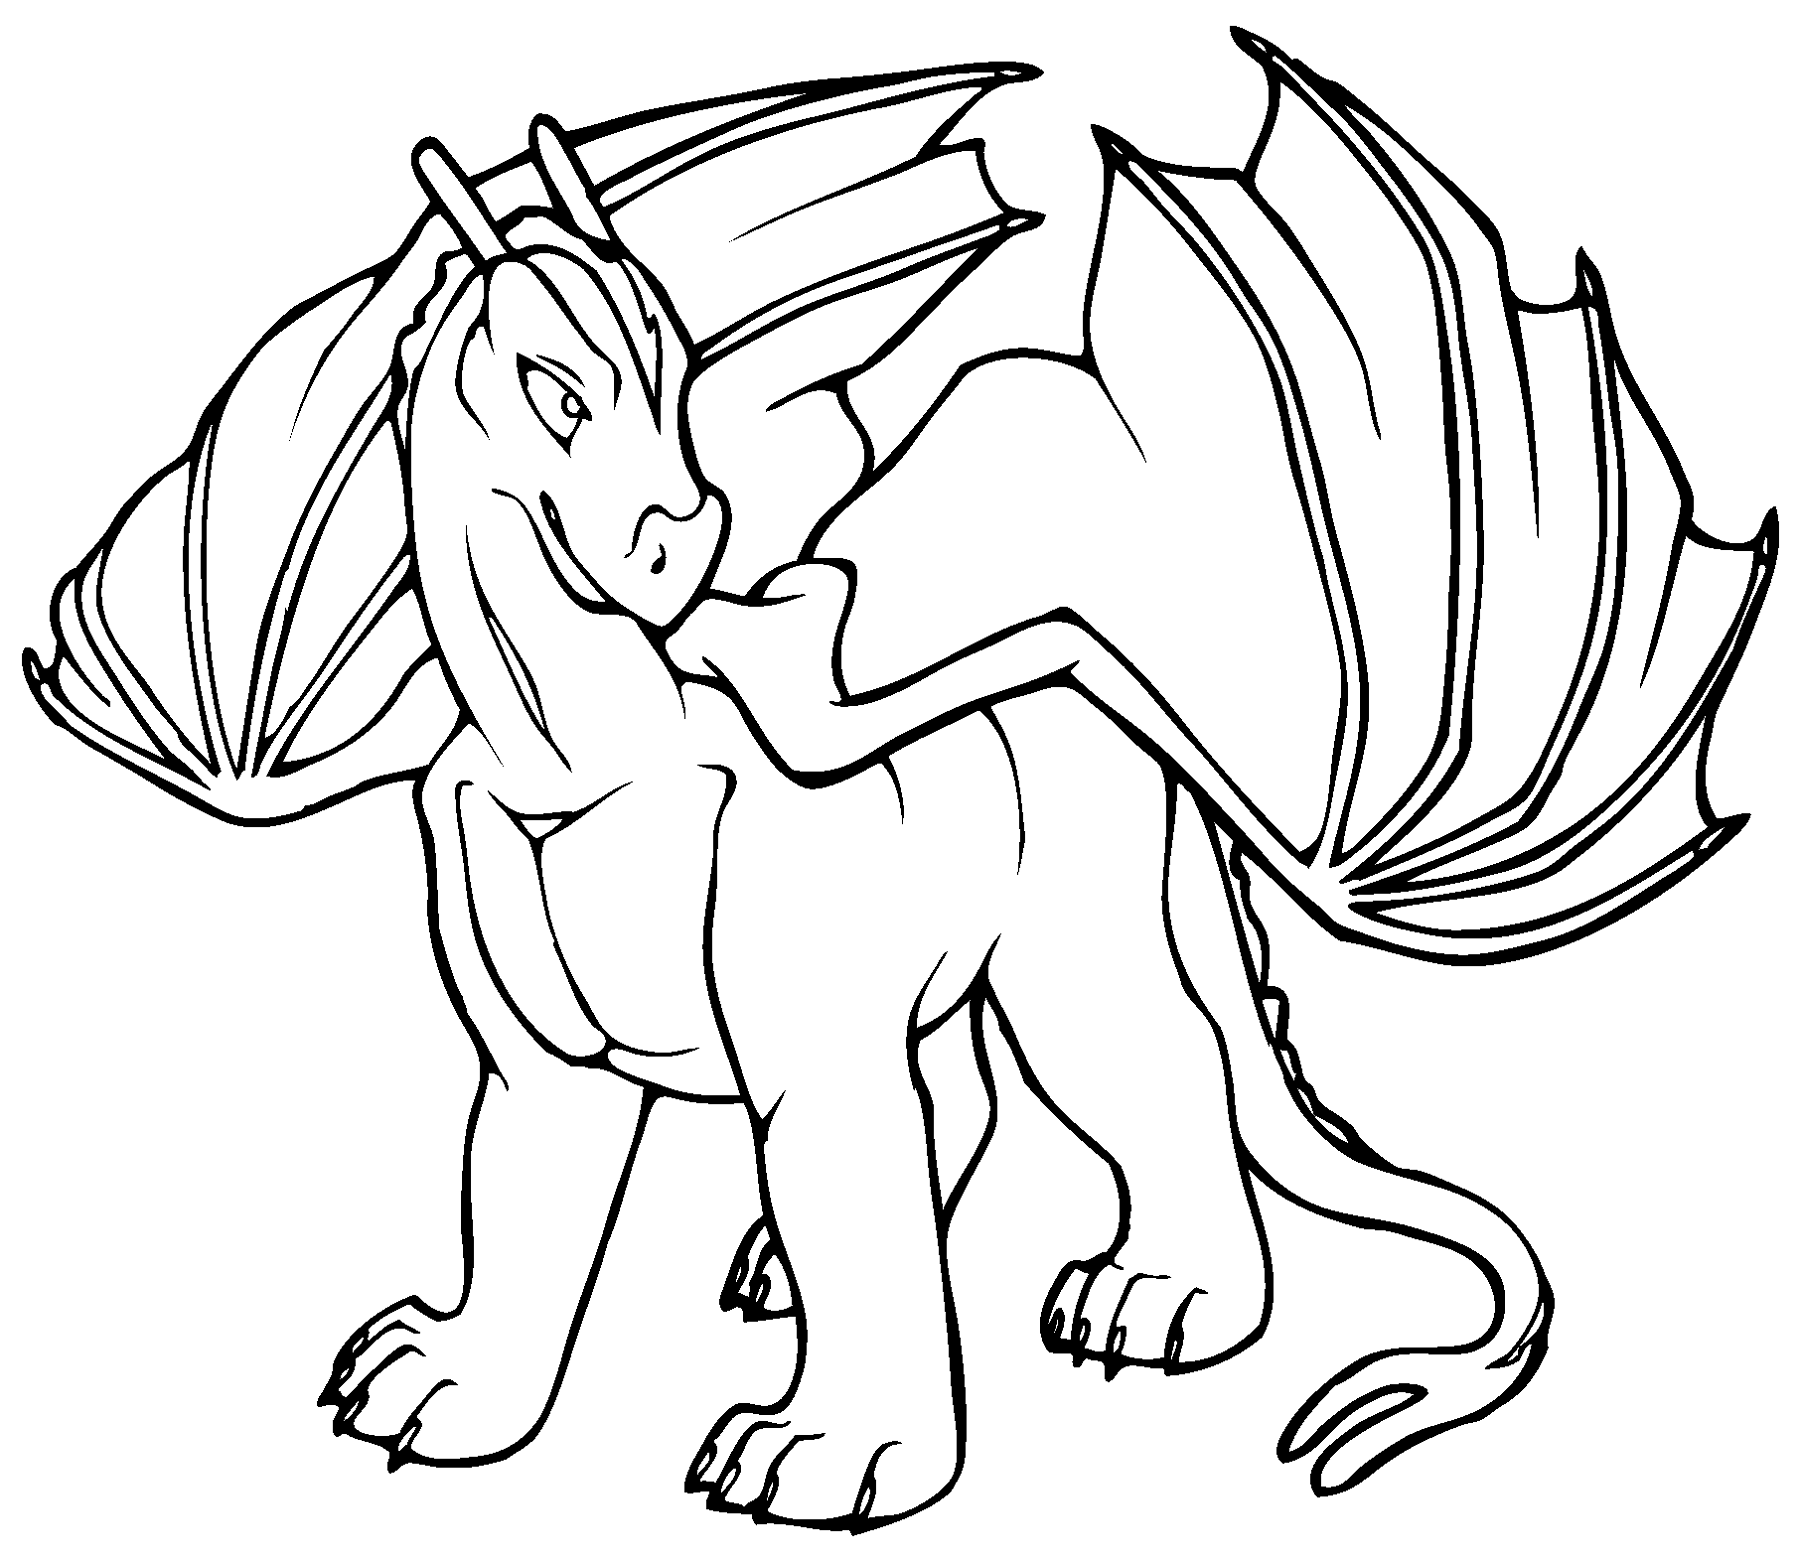 dragon coloring printable dragon coloring pages for kids cool2bkids coloring dragon